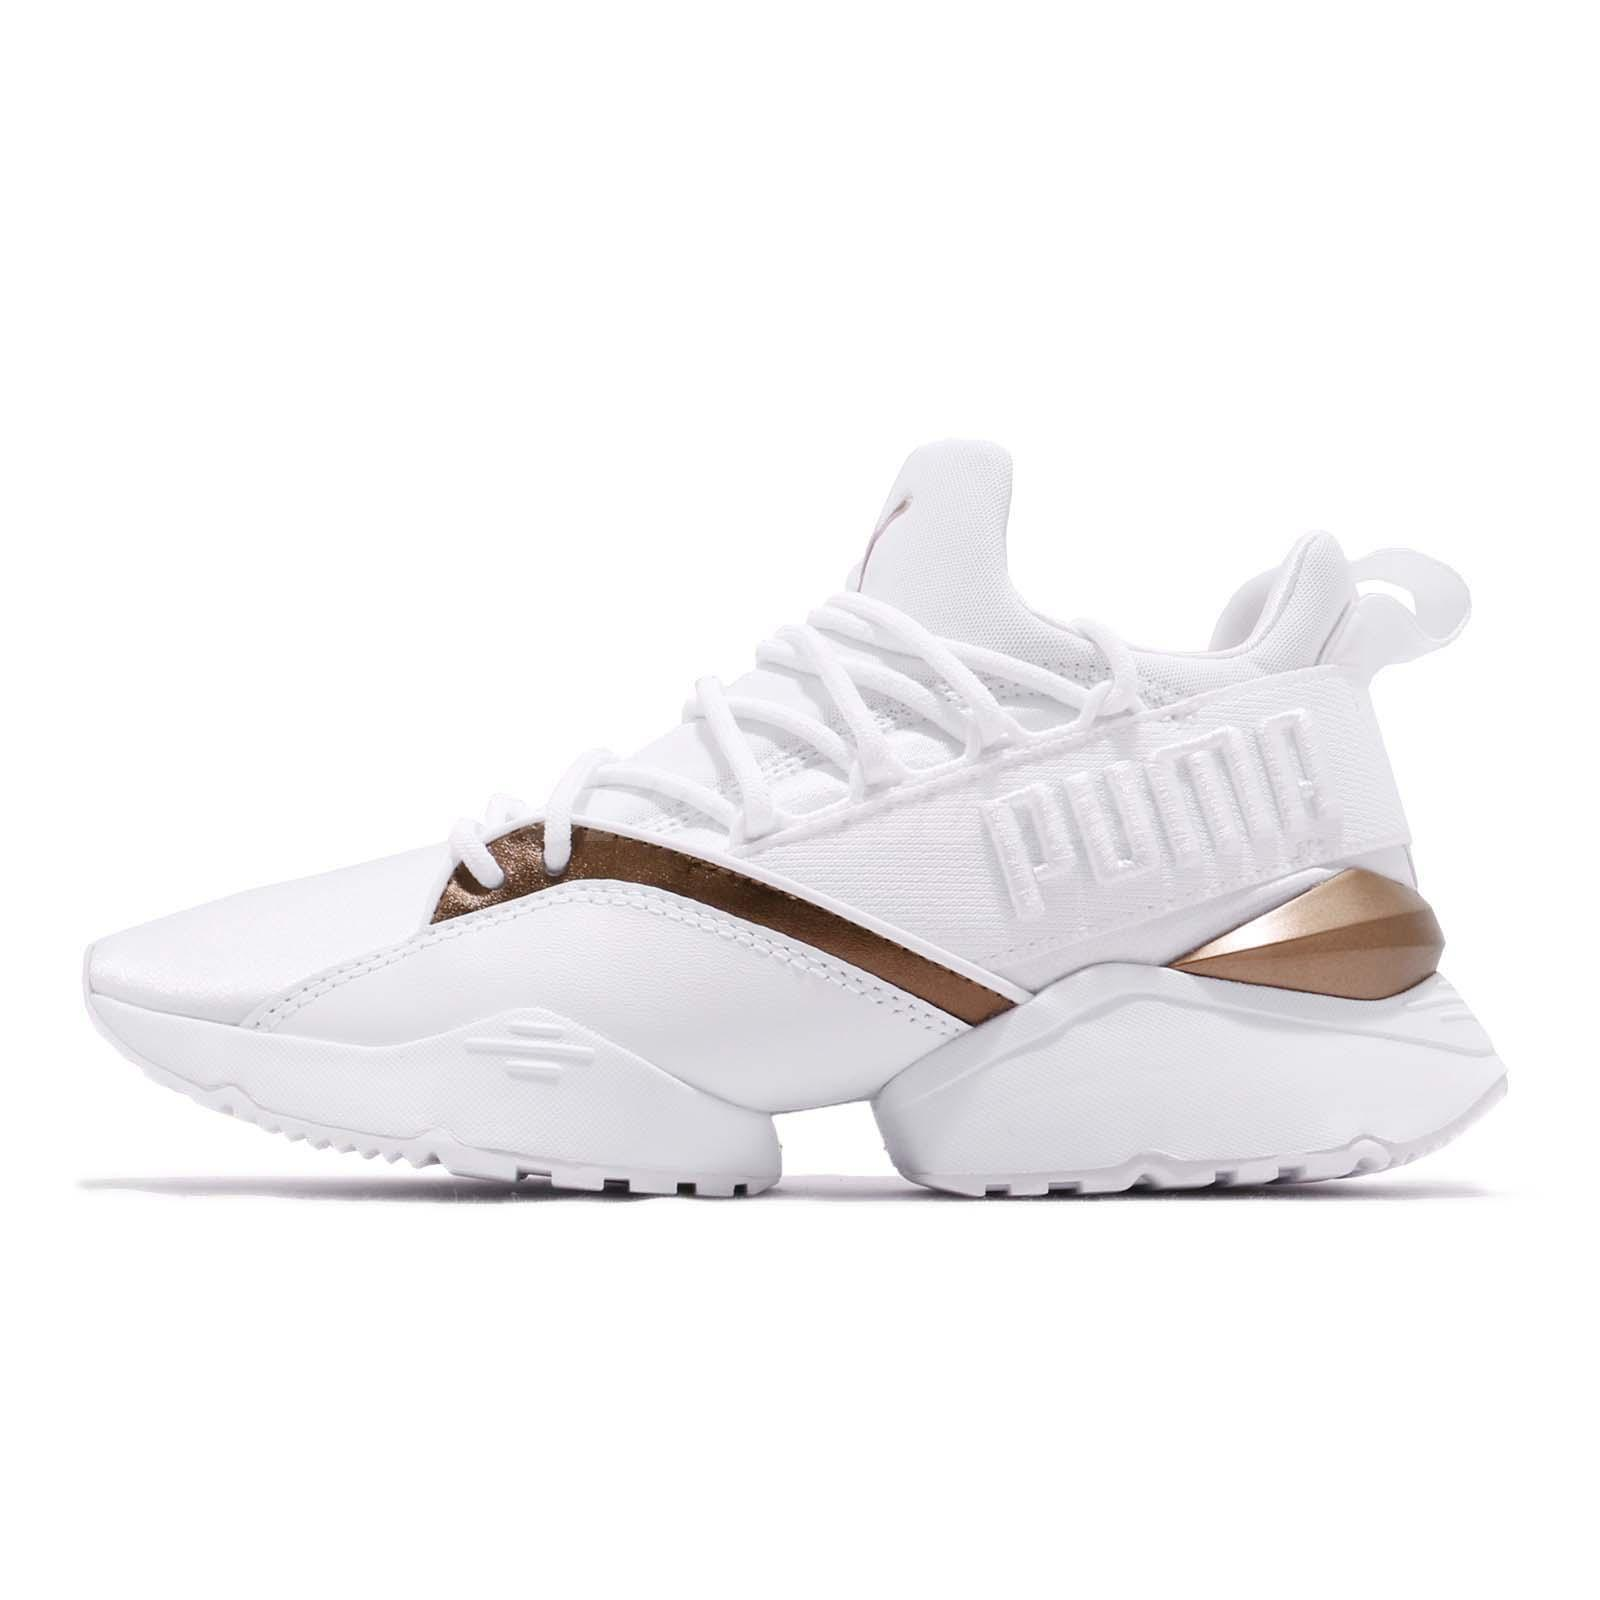 0f23cbd7e0a Puma Muse Maia Luxe Wns White Women Running Casual Lifestyle Shoes 366766-02